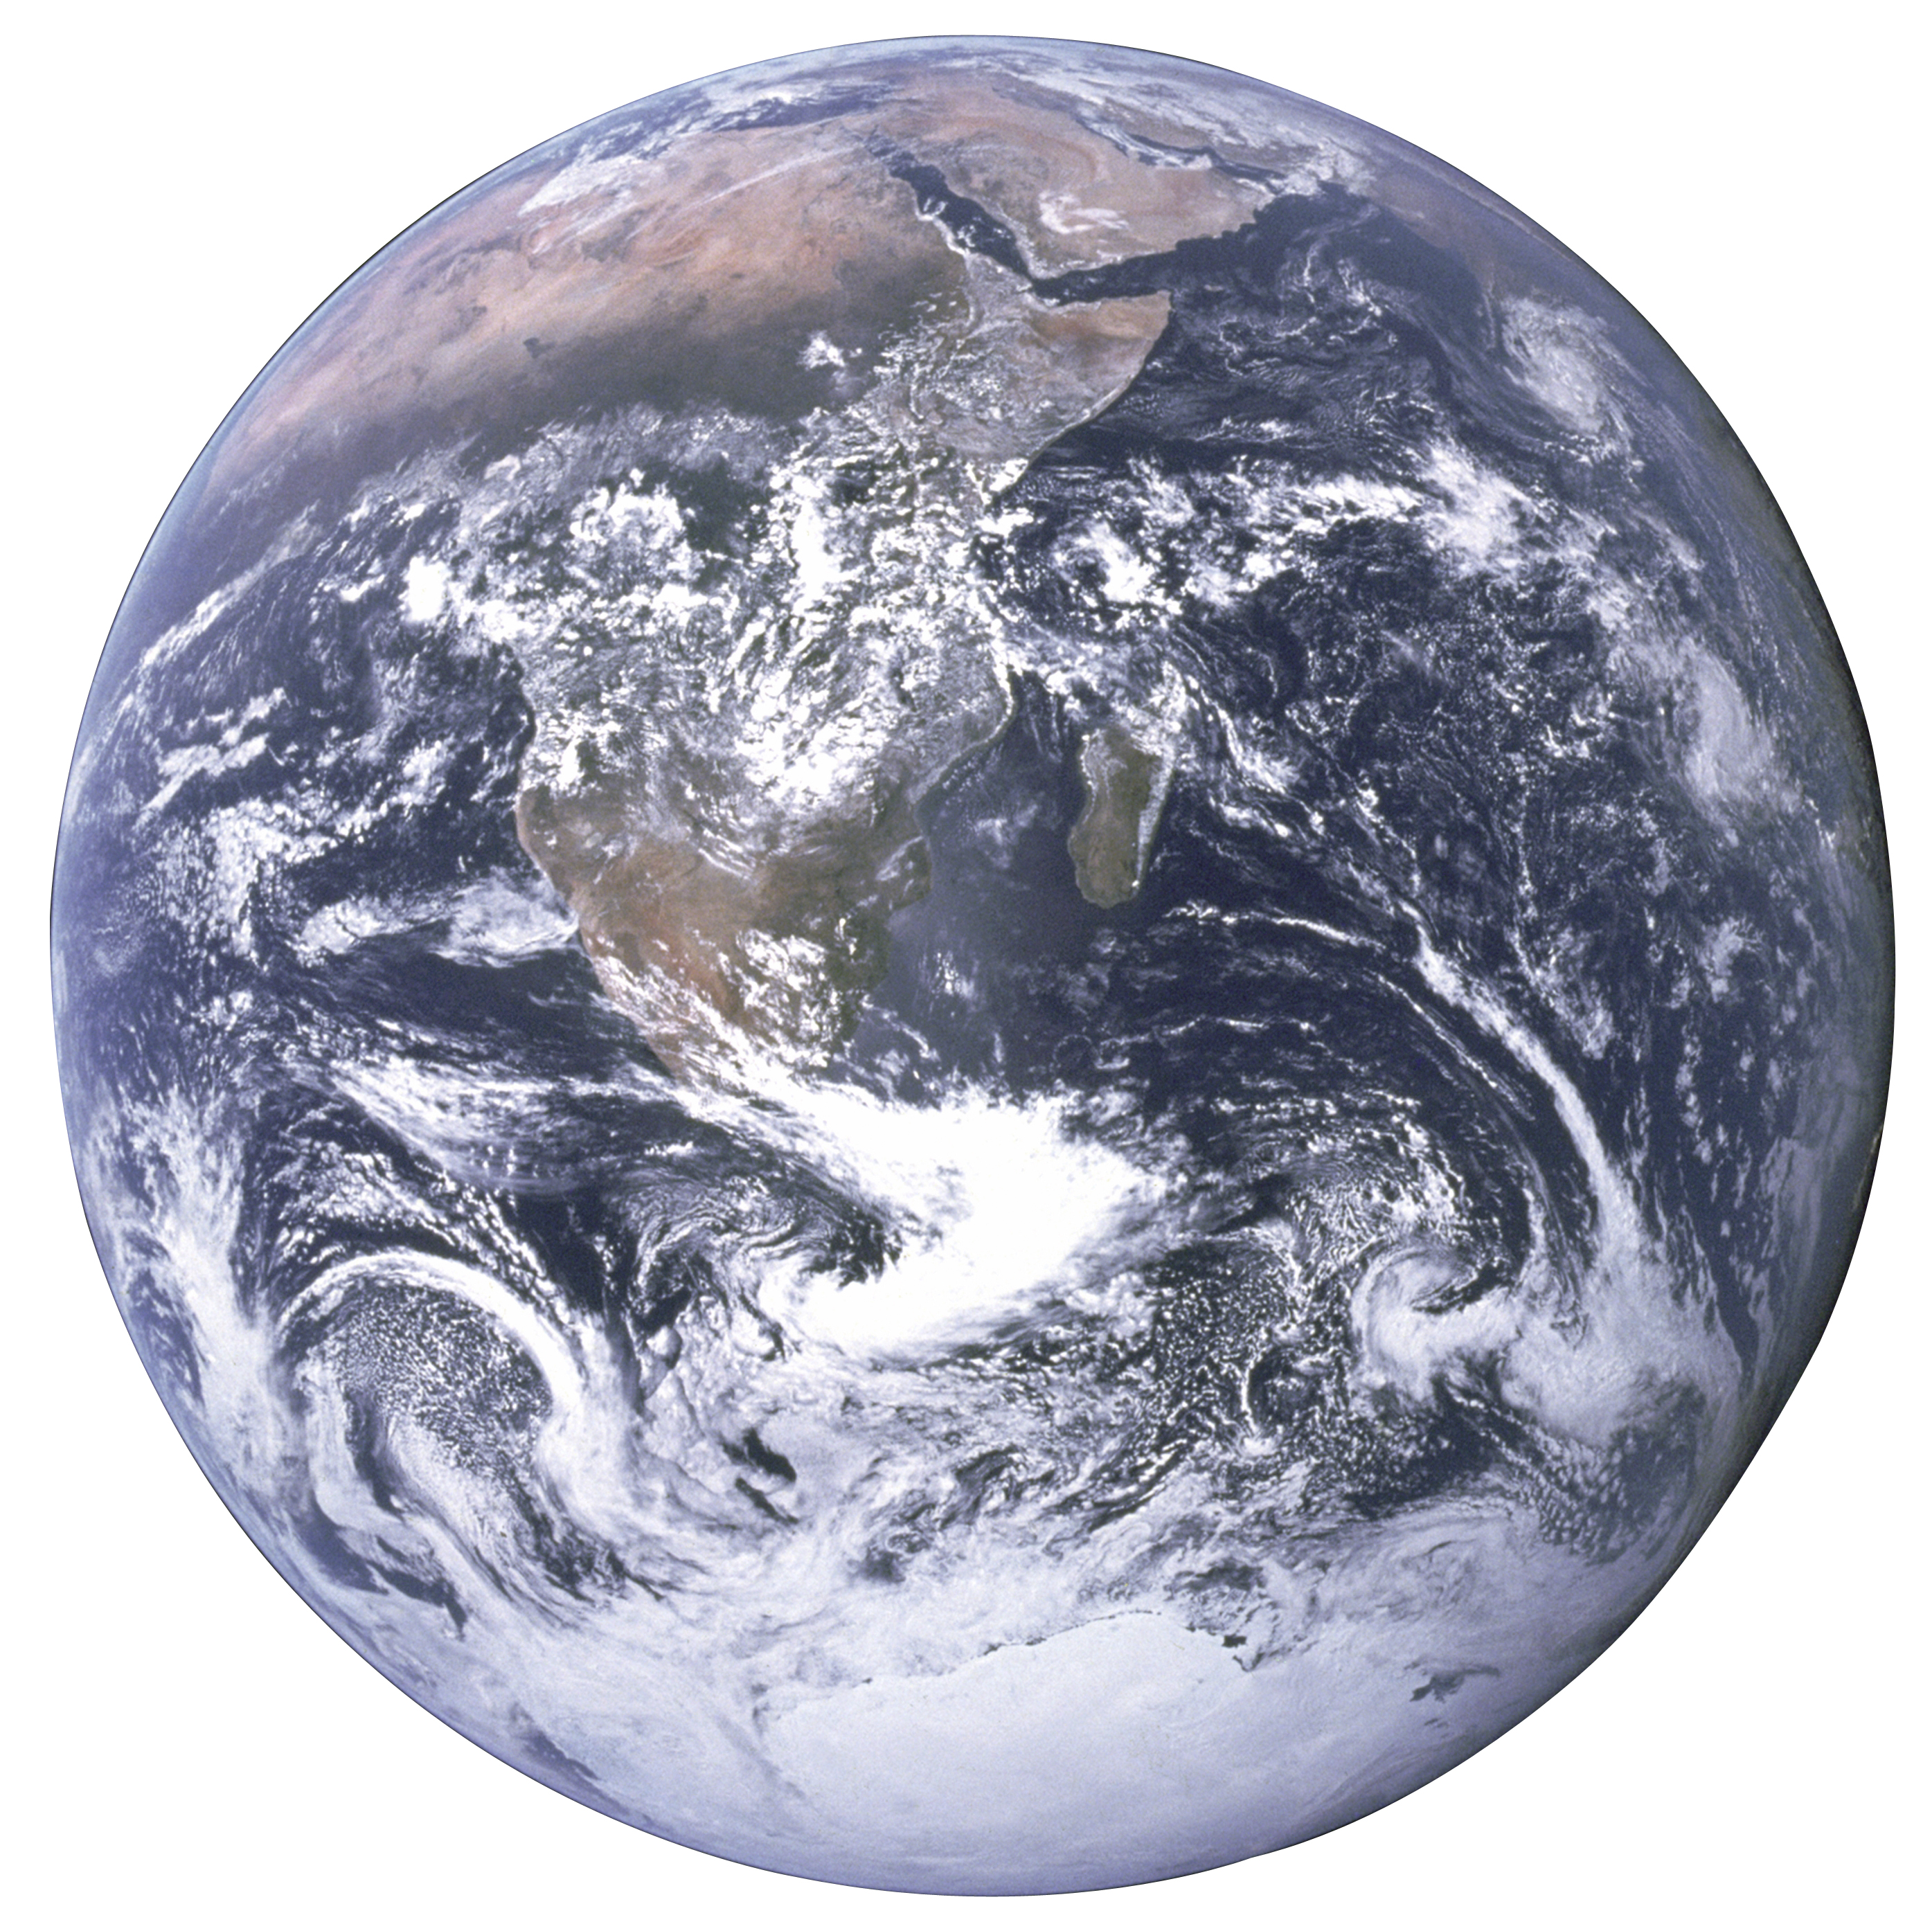 Png image purepng free. Clipart earth high resolution